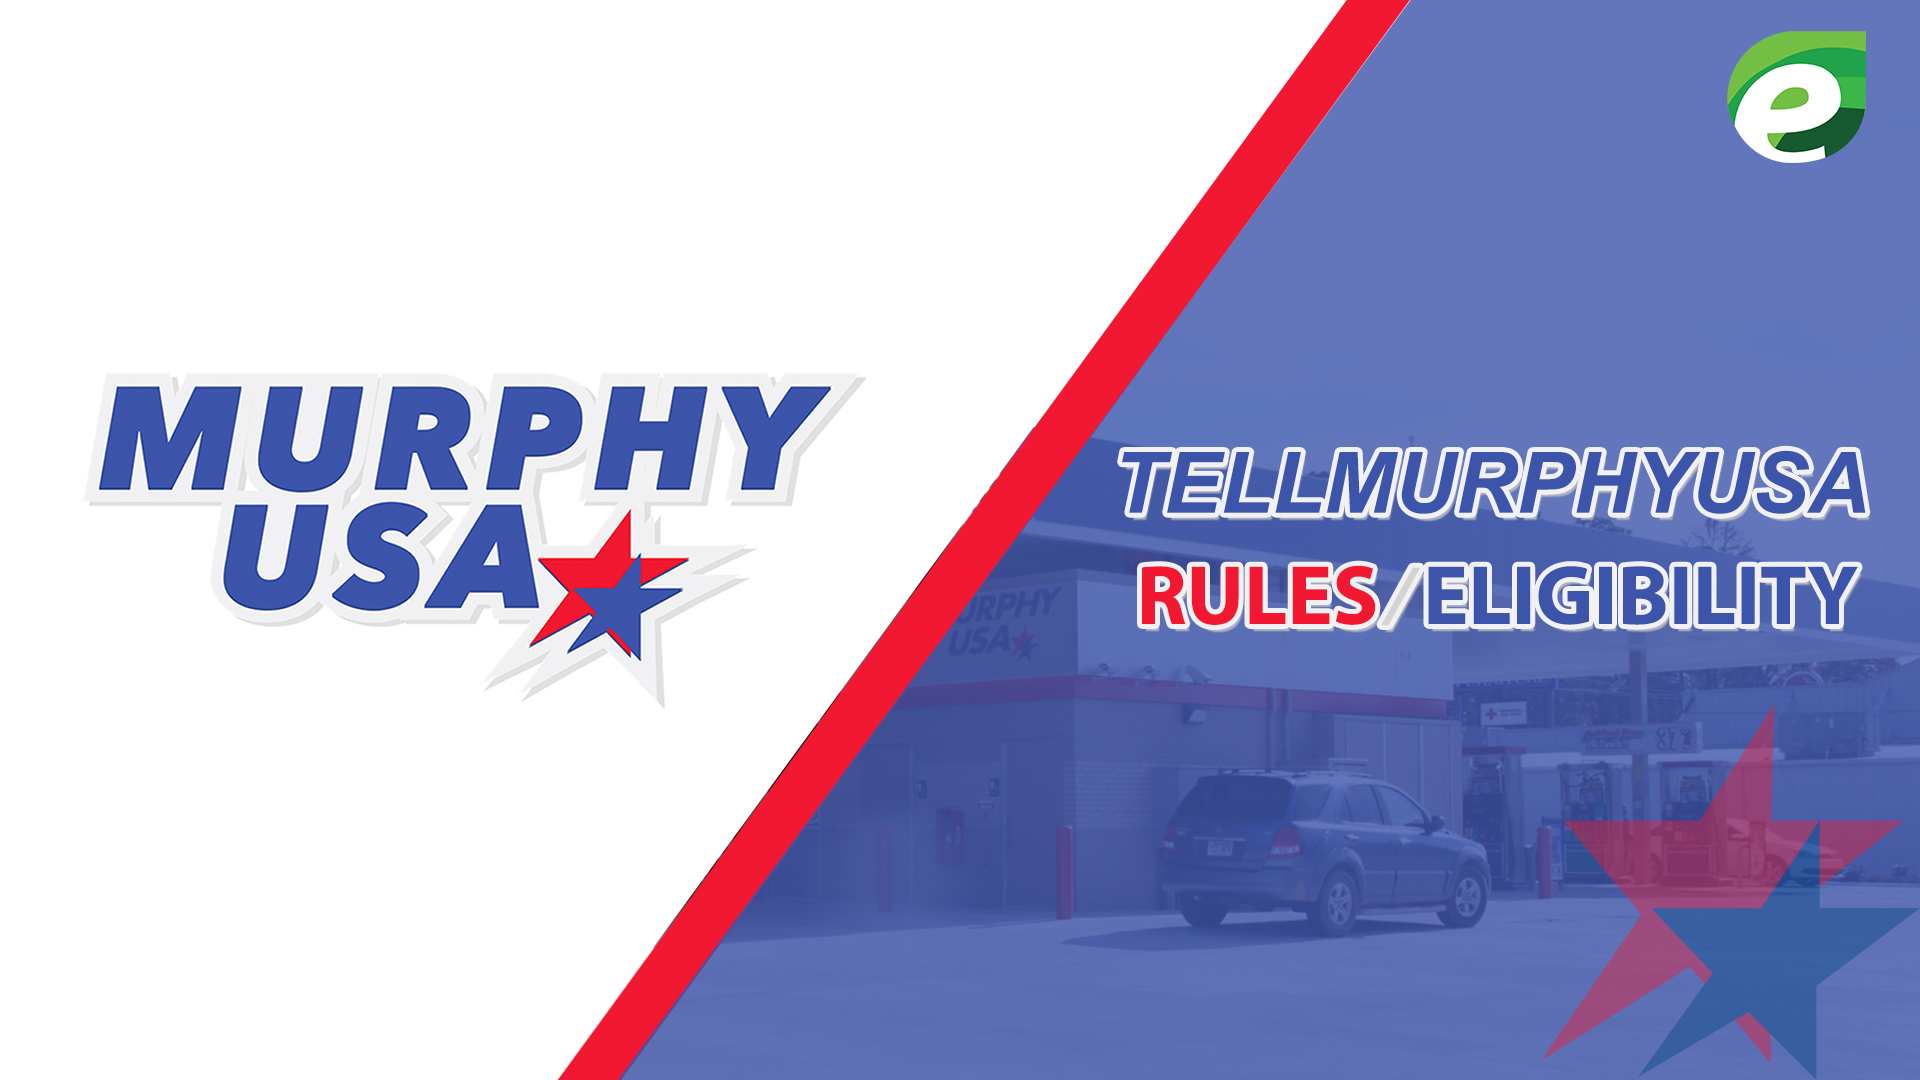 Tell murphy usa - rules/eligibility